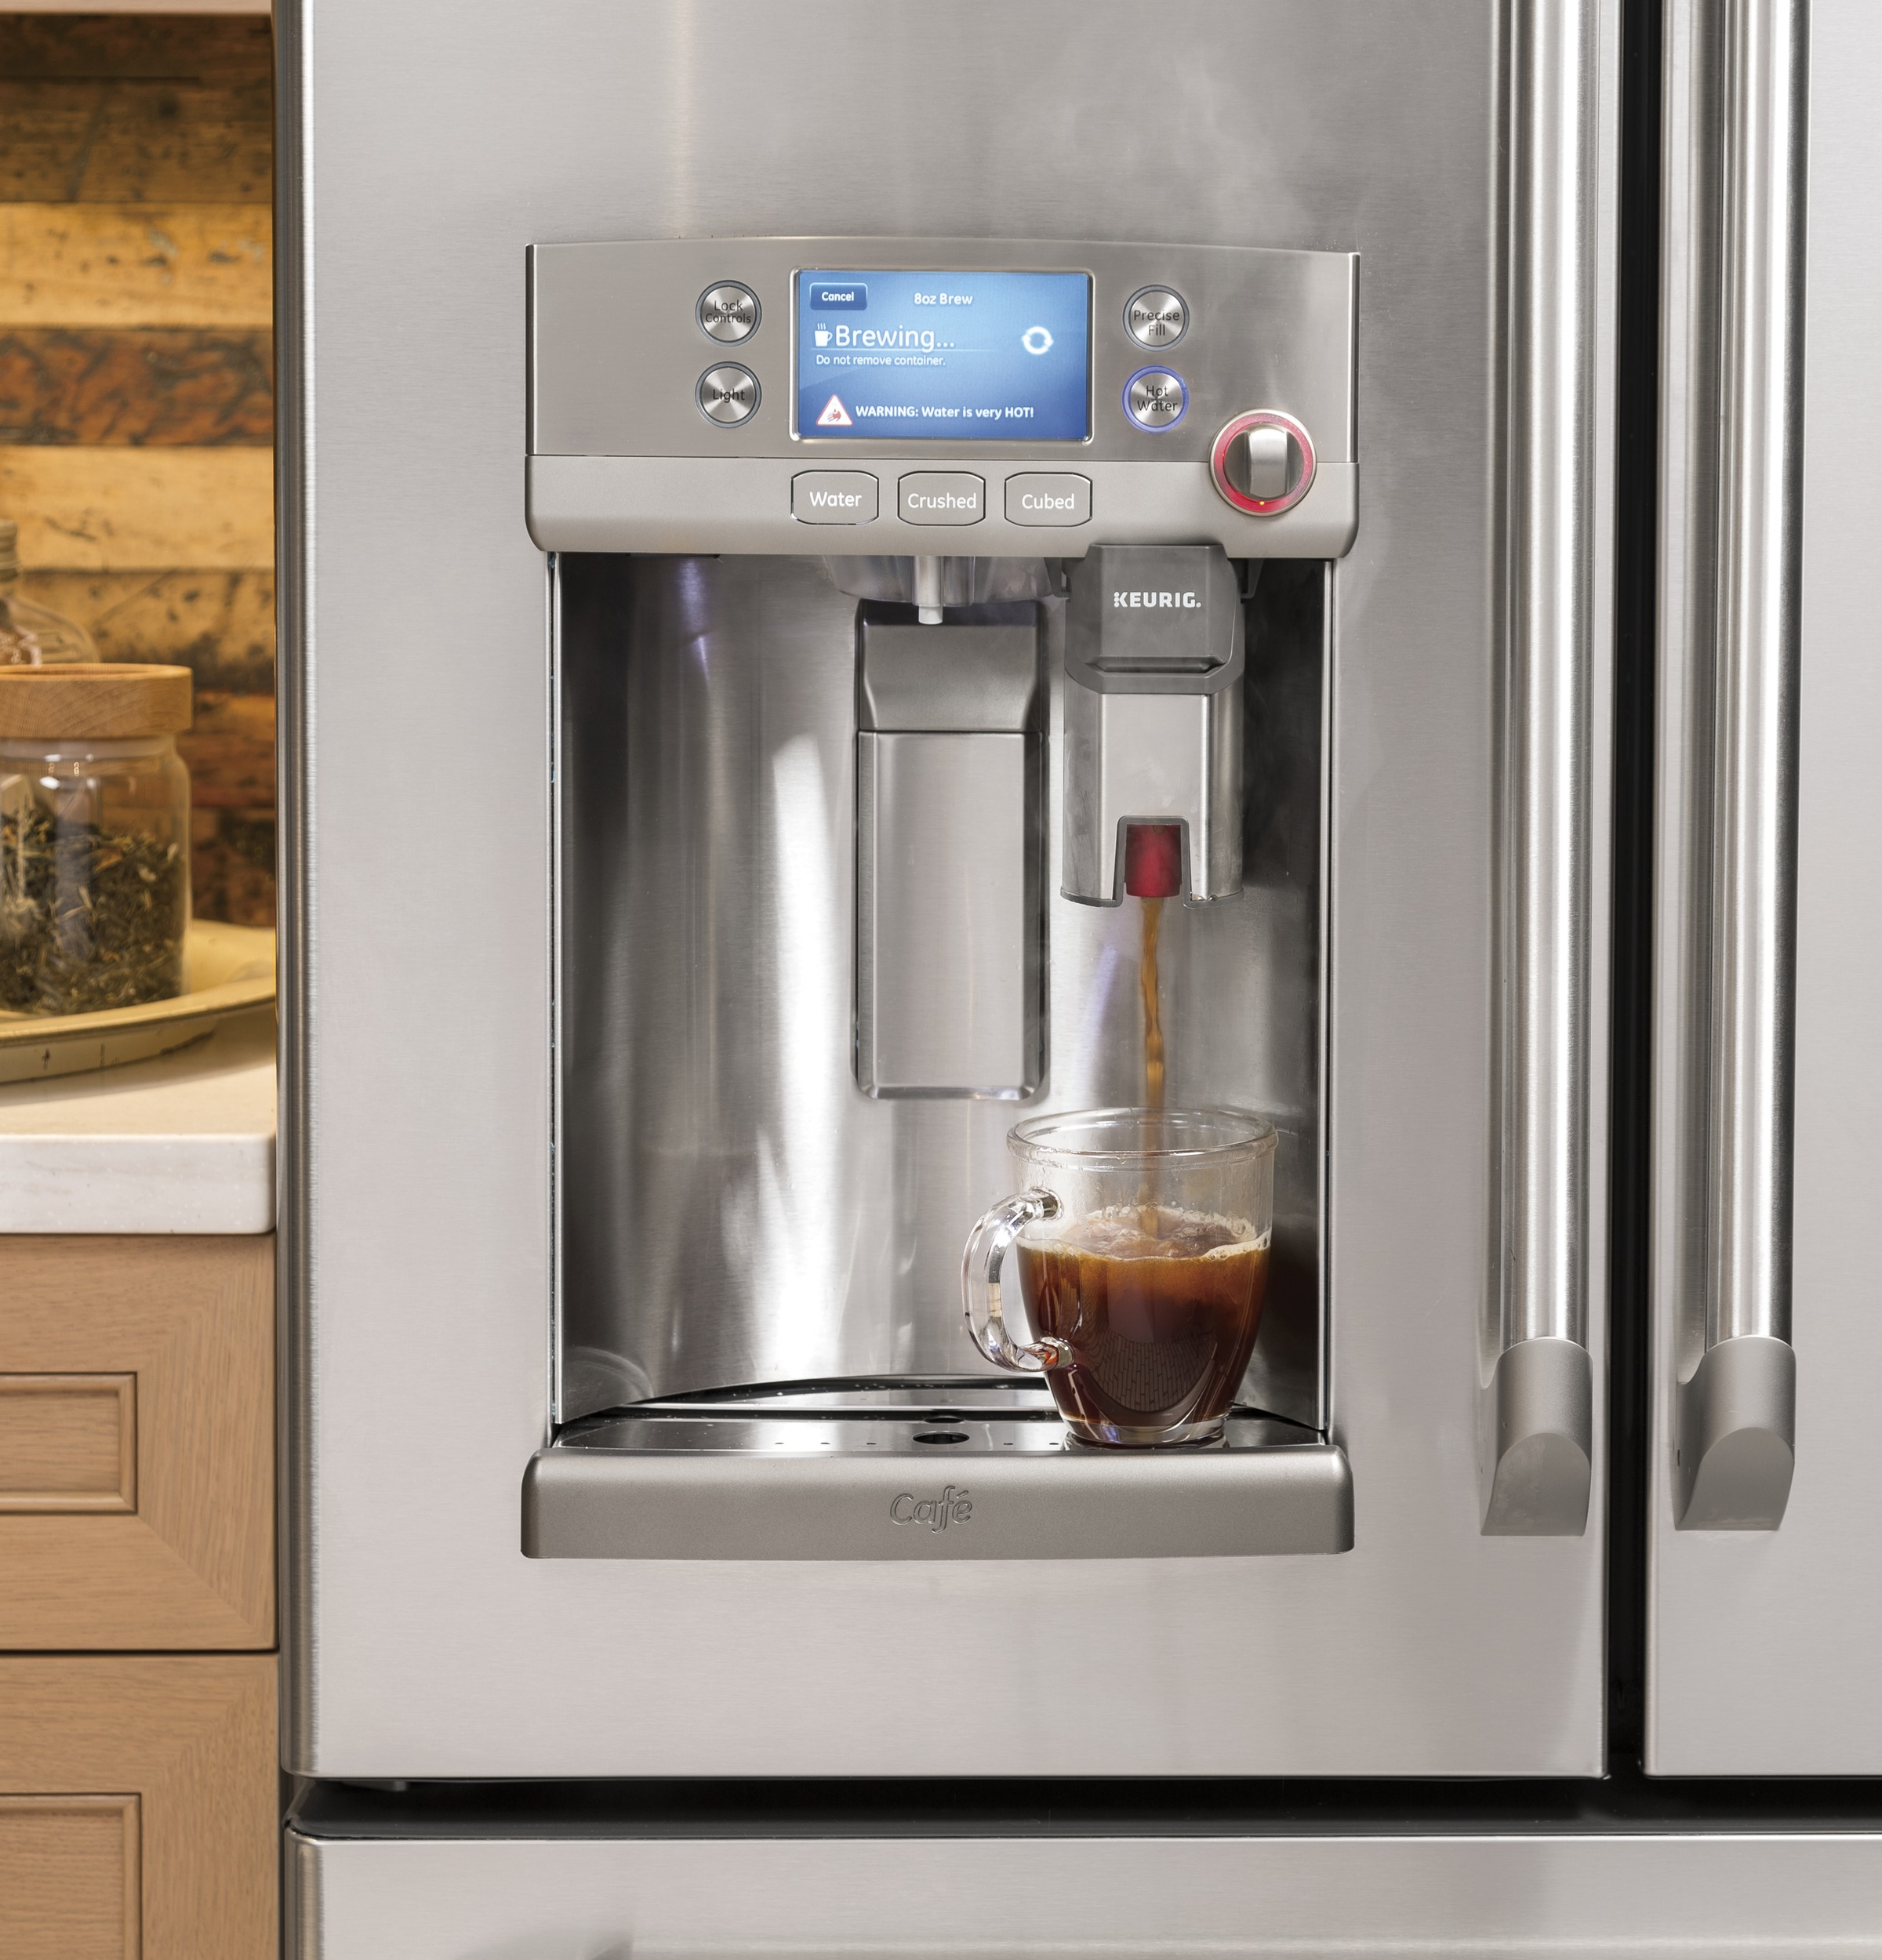 ge profile refrigerator counter depth french door with keurig